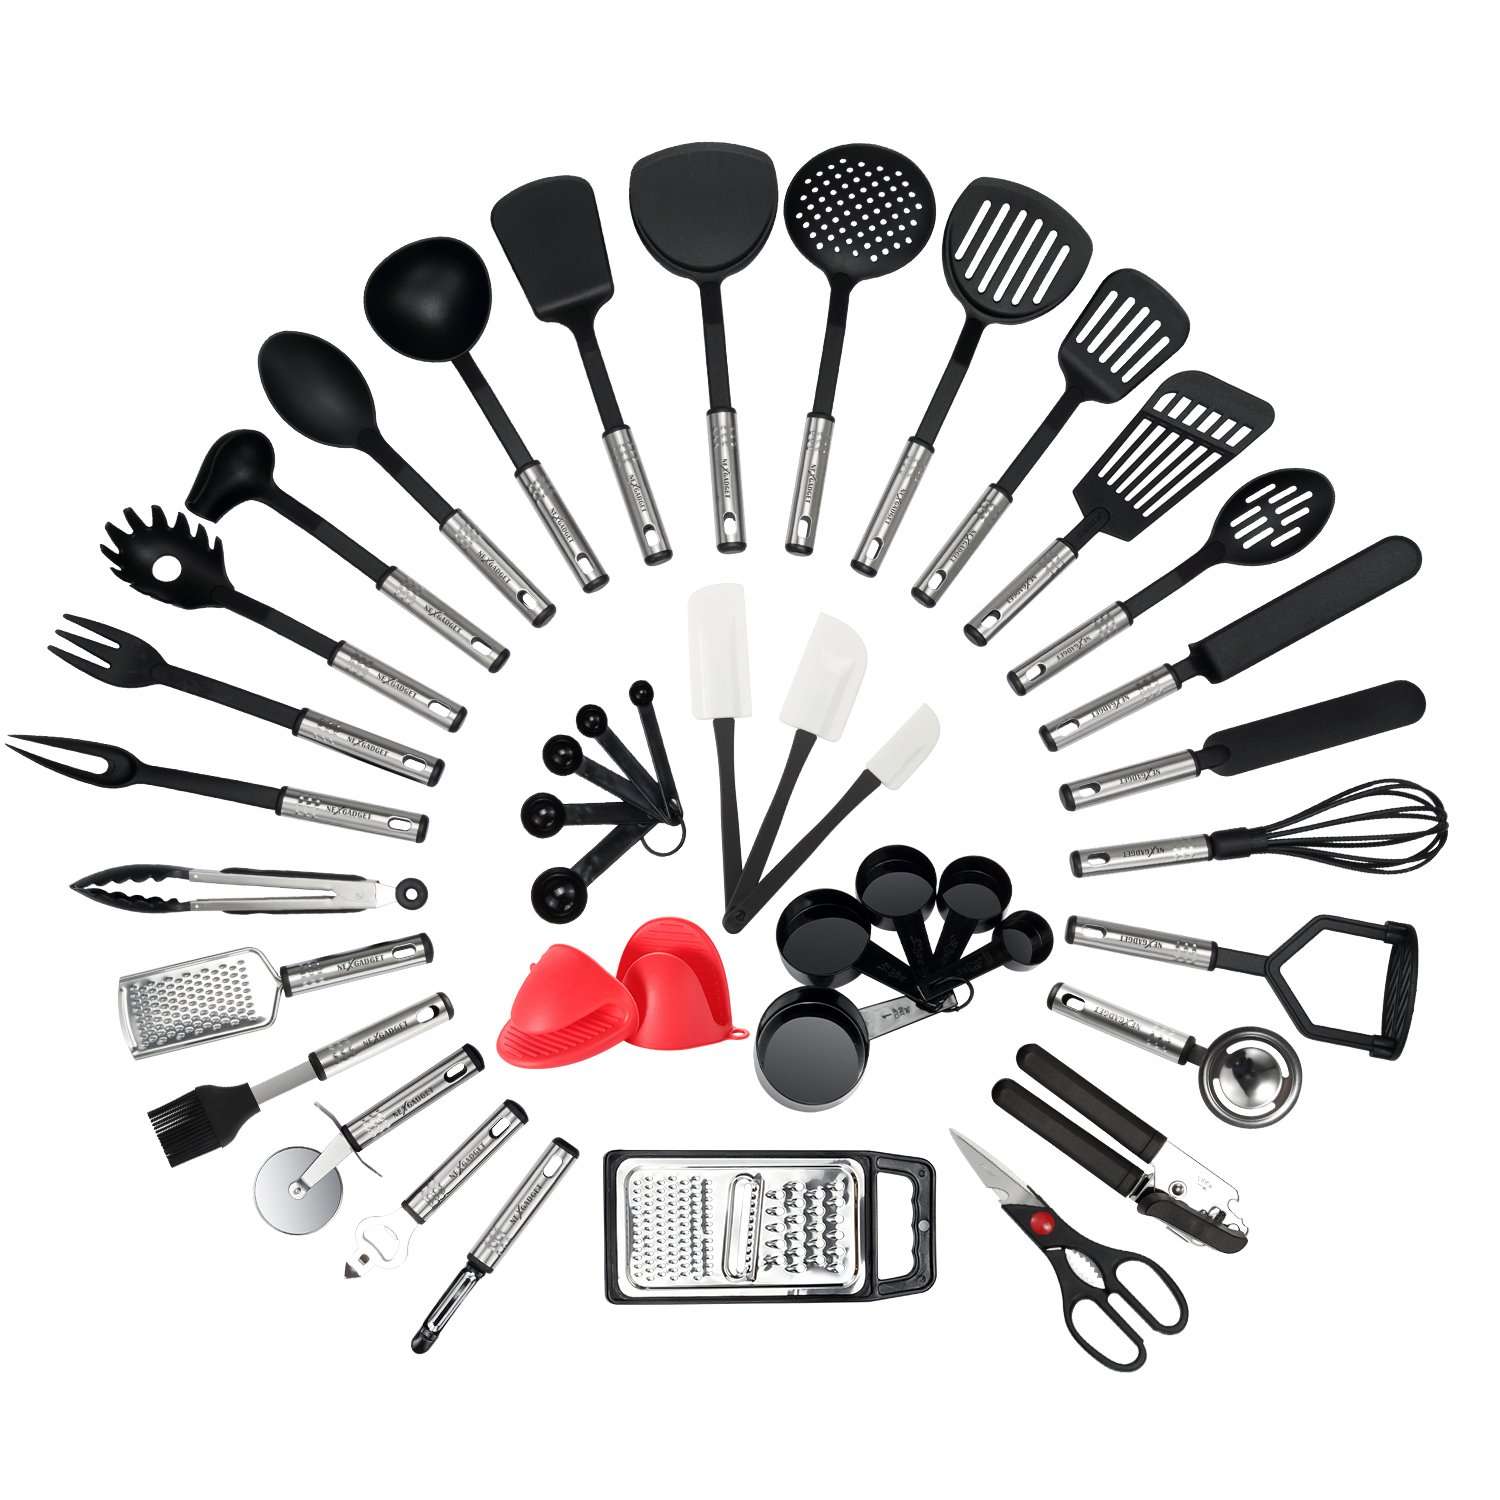 NexGadget Premium Kitchen Utensils 38 Pieces Kitchen Utensils Sets Stainless Steel And Nylon Cooking Tools Spoons, Turners, Tongs, Spatulas, Pizza Cutter, Whisk And More by NEXGADGET (Image #1)